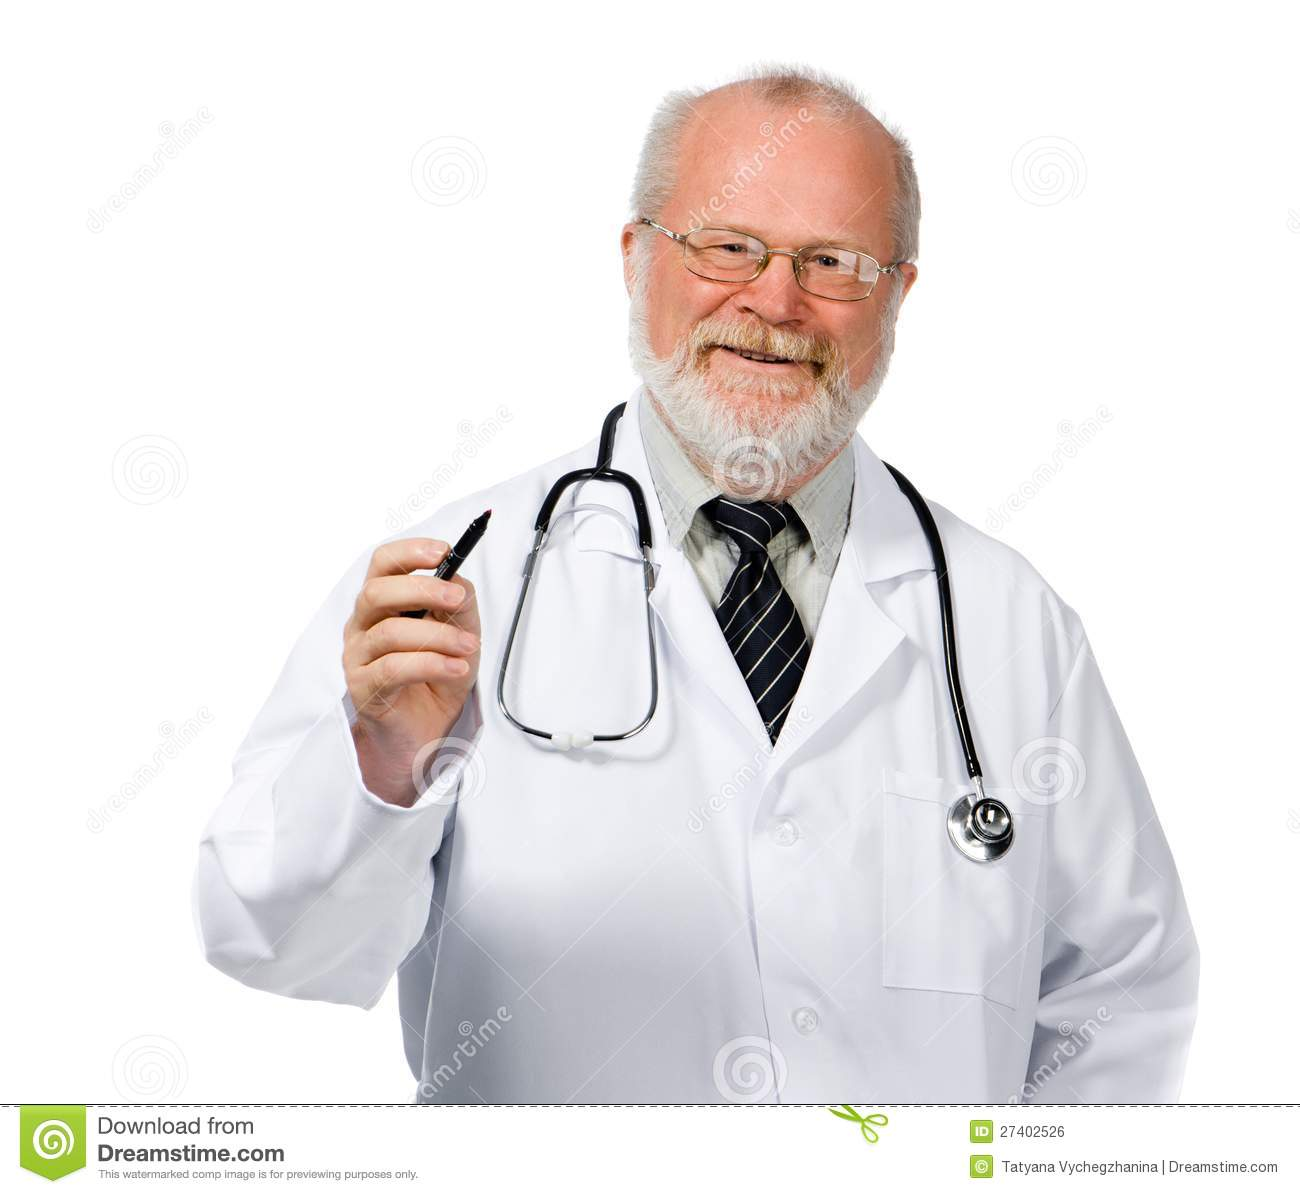 Doctor Drawing Heart Royalty Free Stock Image - Image: 27402526